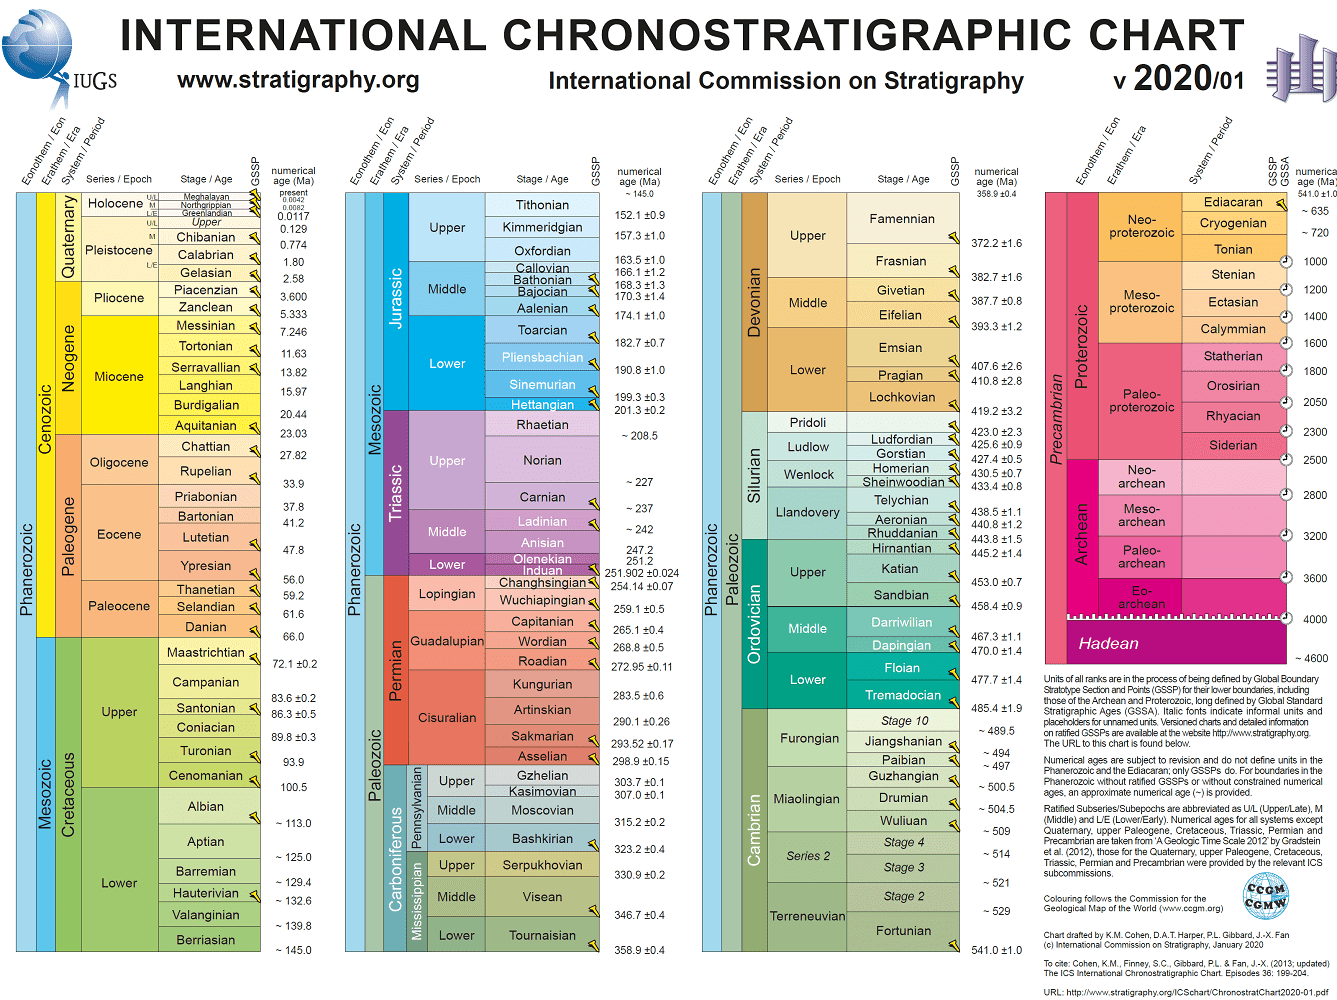 Geologic Time Scale by the International Union of Geological Scientists